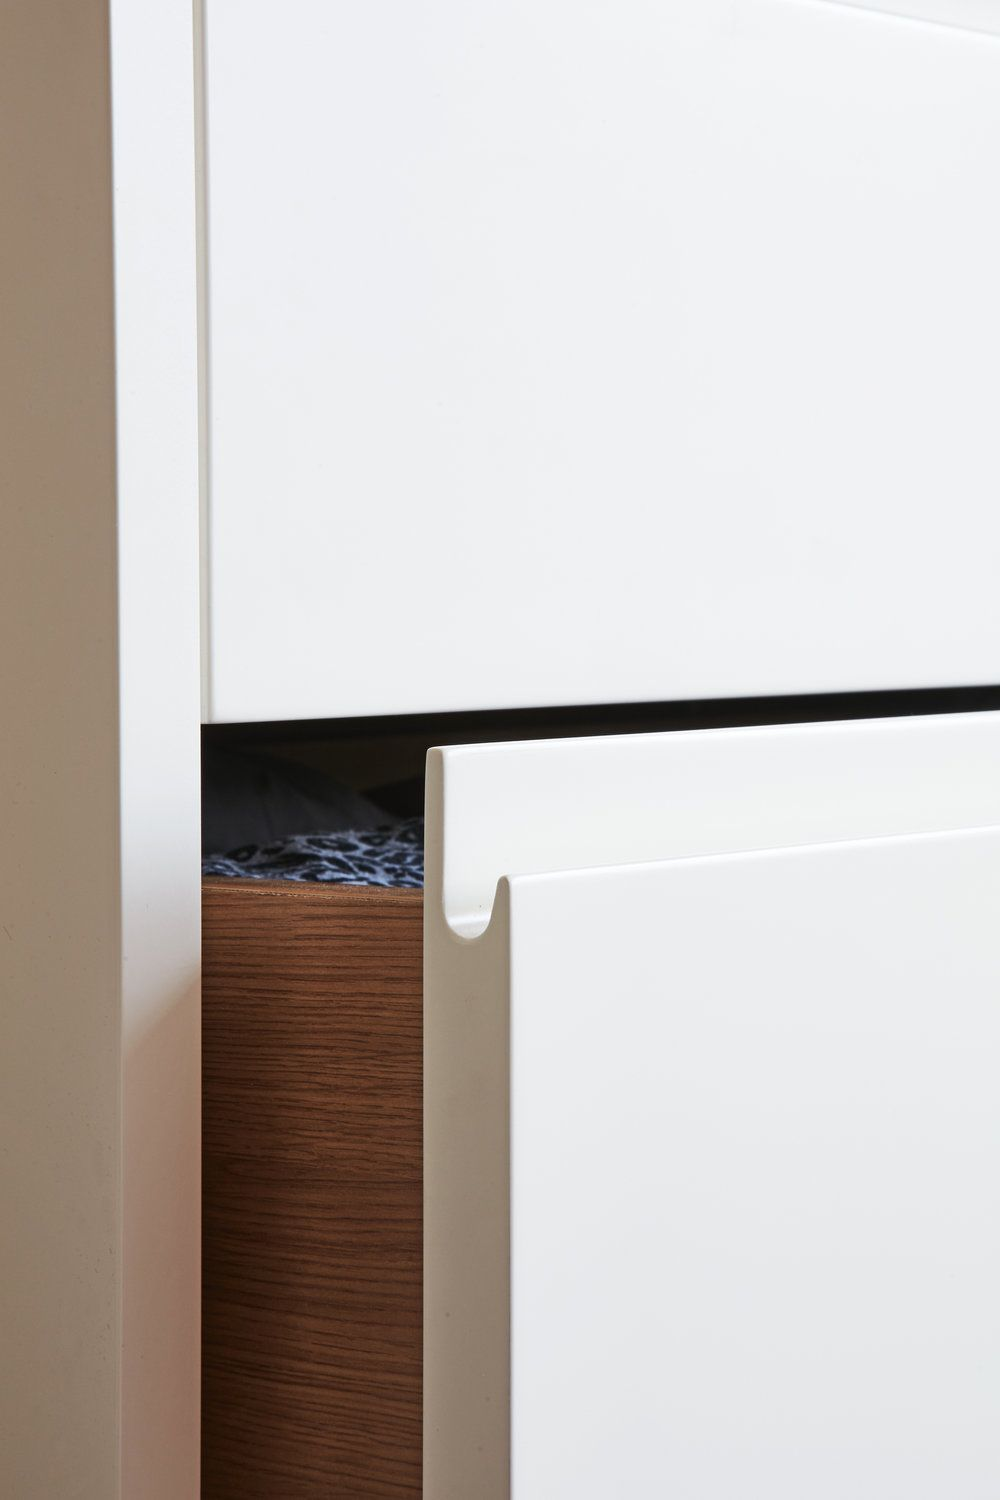 J-pull / routed handle detail | Kitchen handles, Cabinet ...